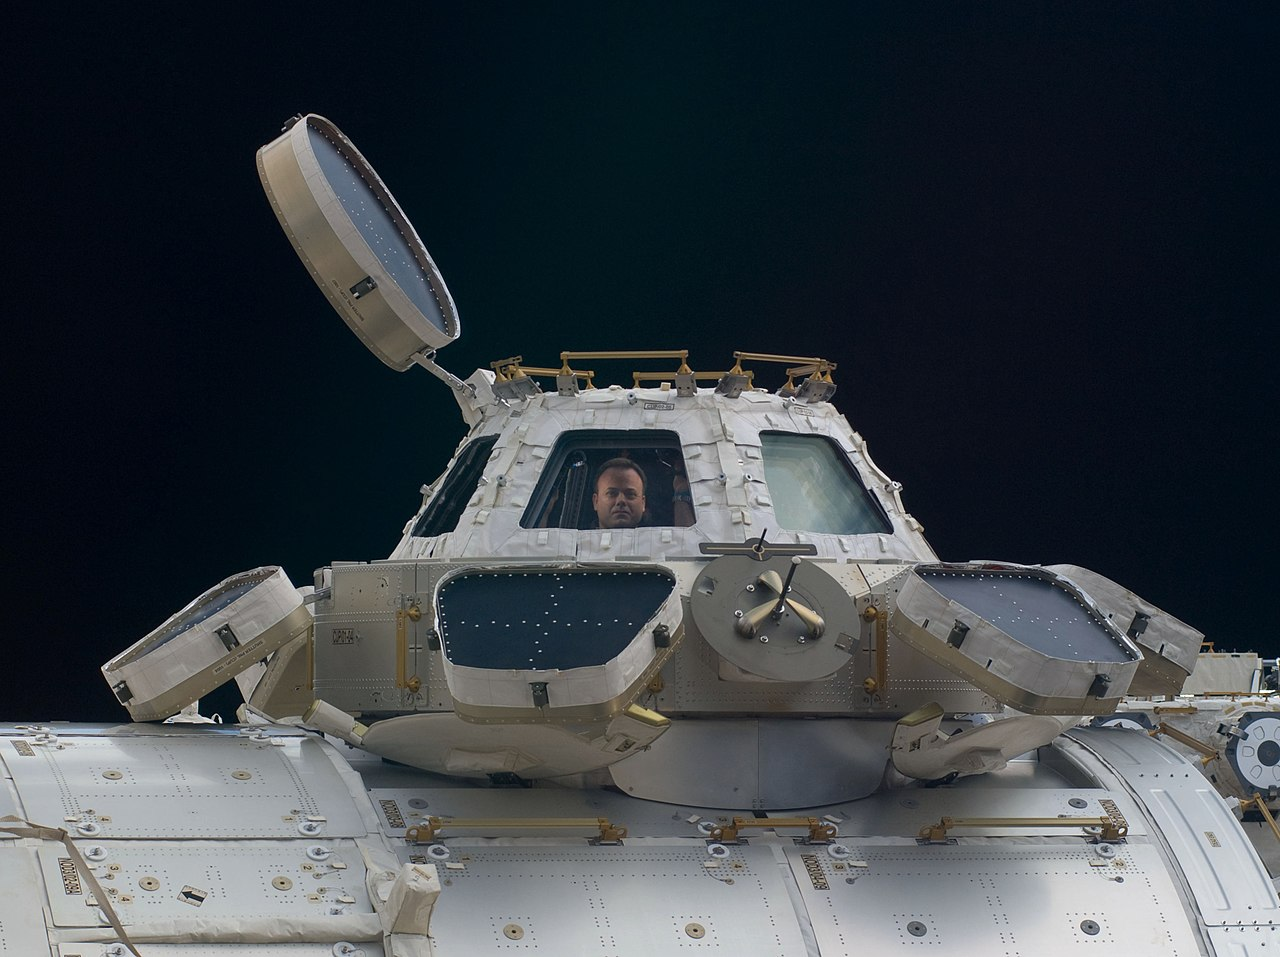 International Space Station cupola exterior.